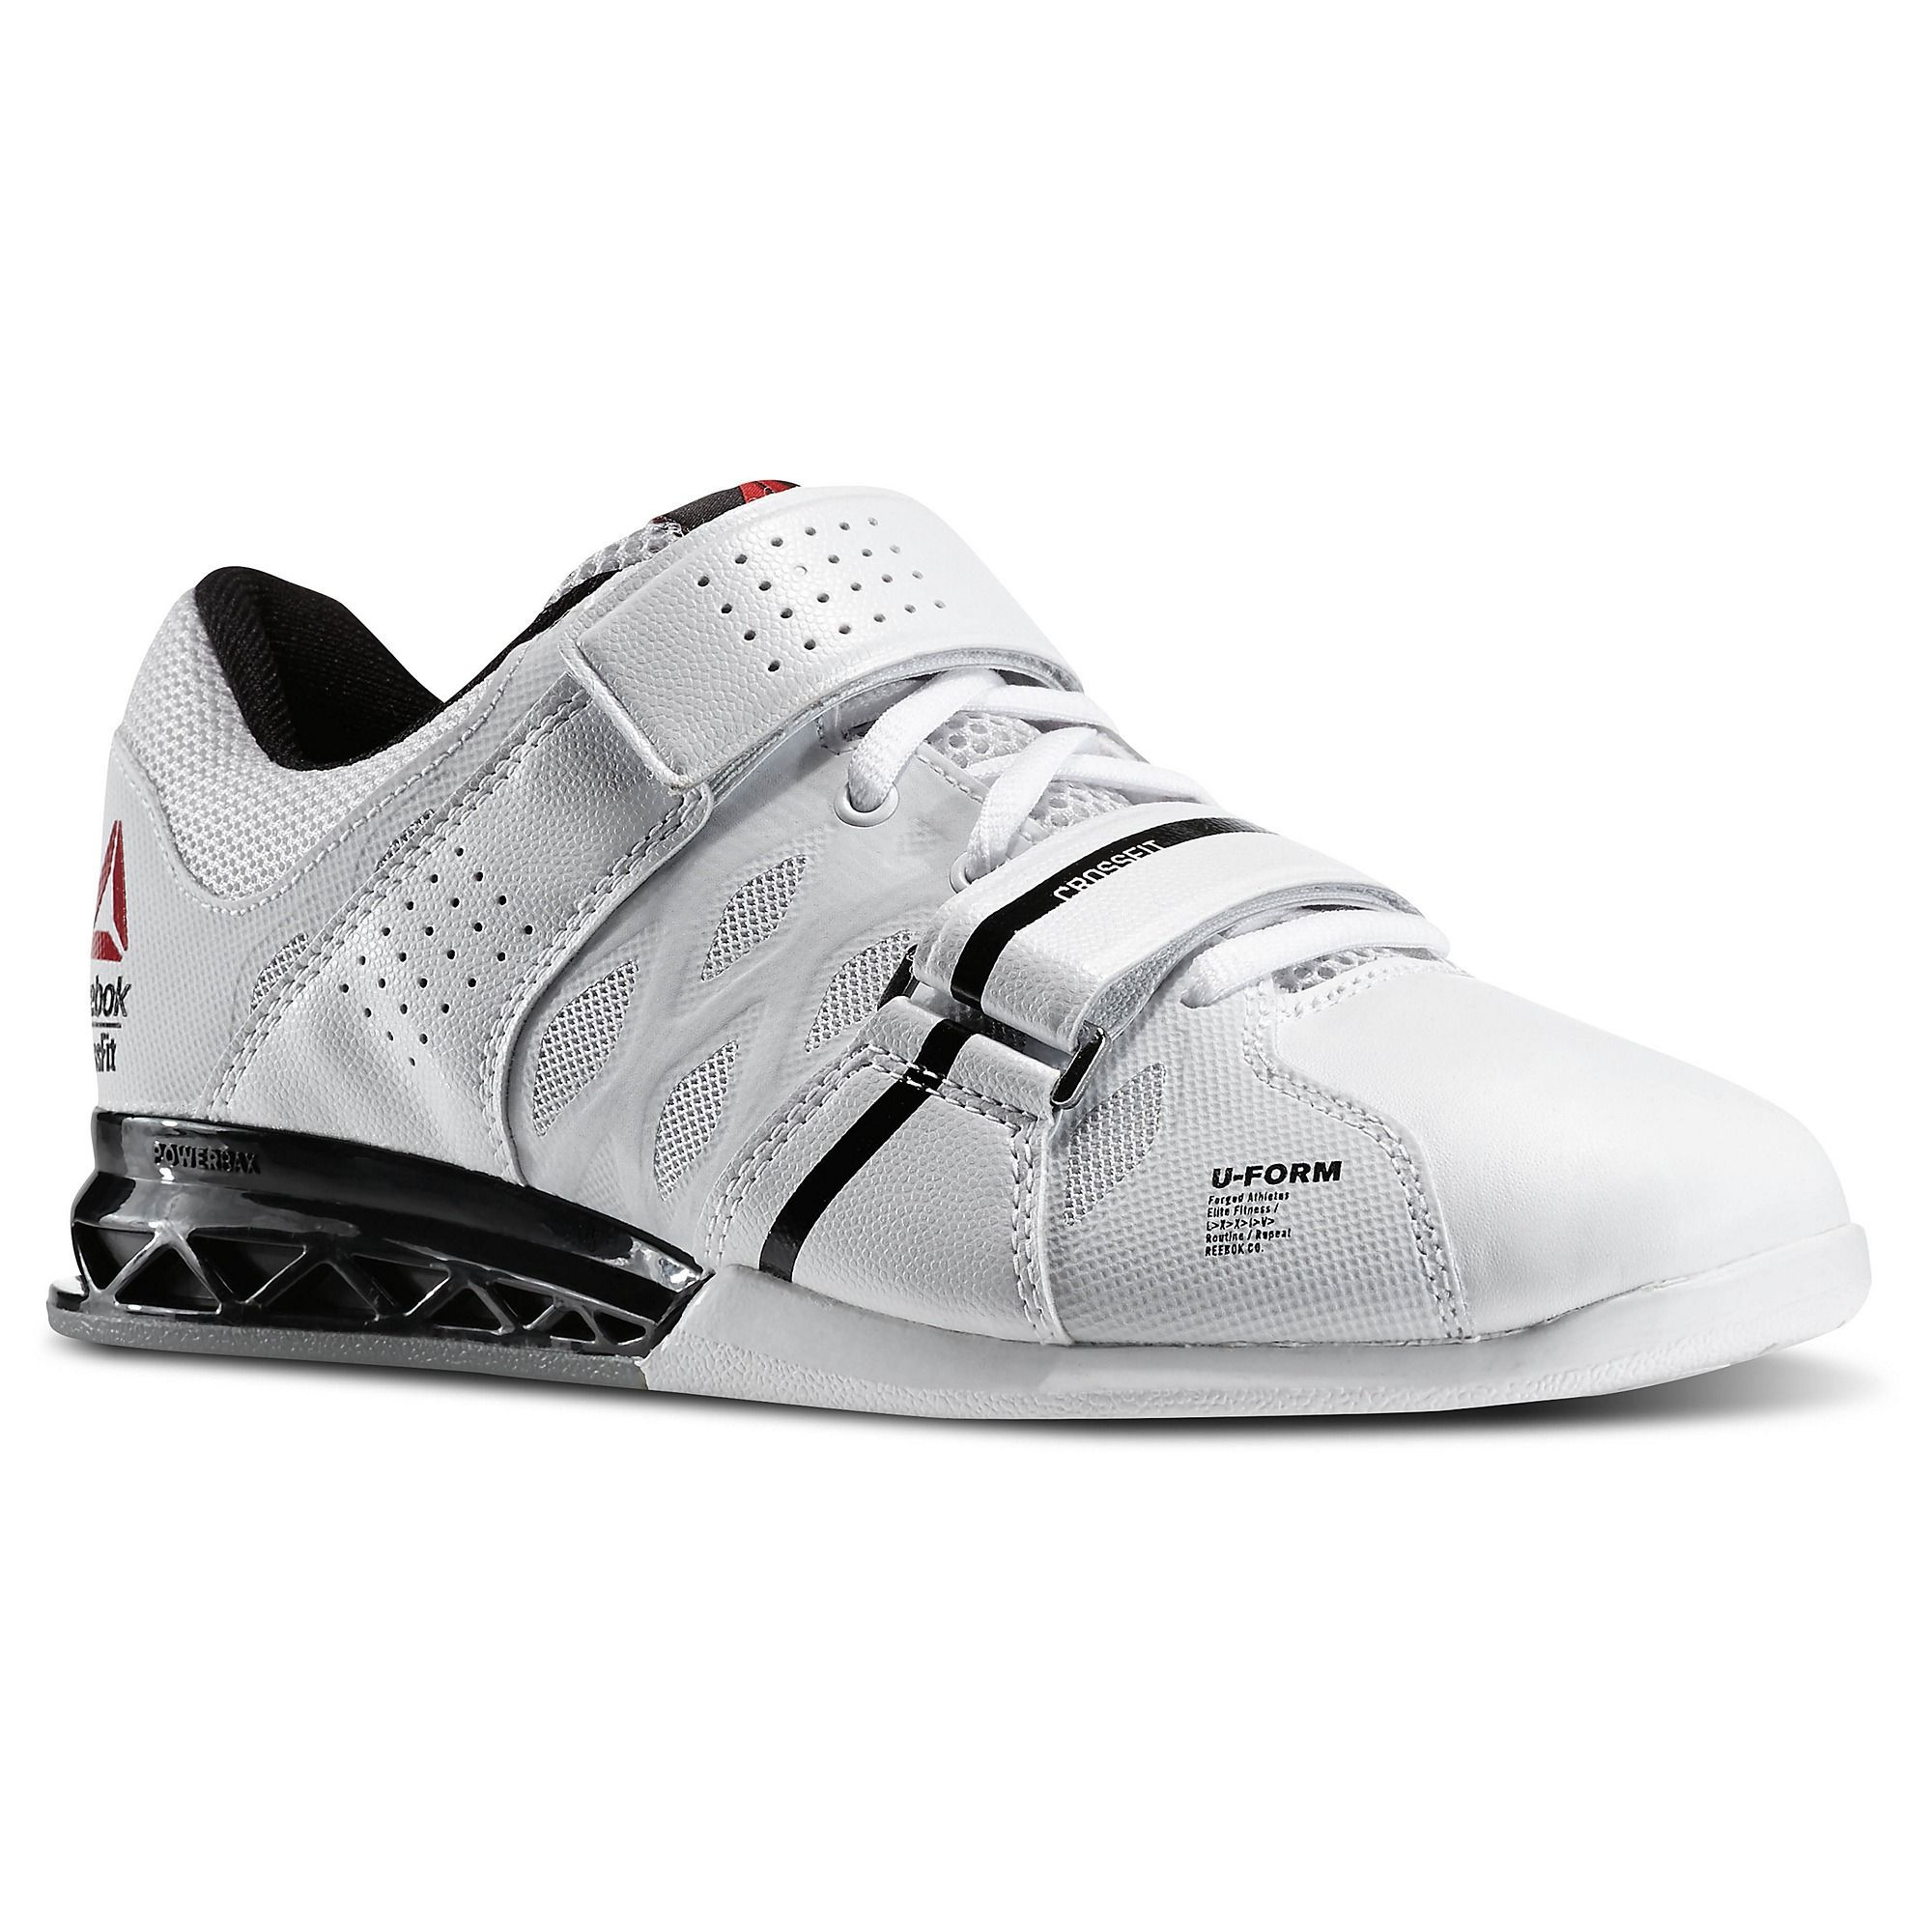 CrossFit Lifter | Reebok US. Crossfit ShoesReebok ...